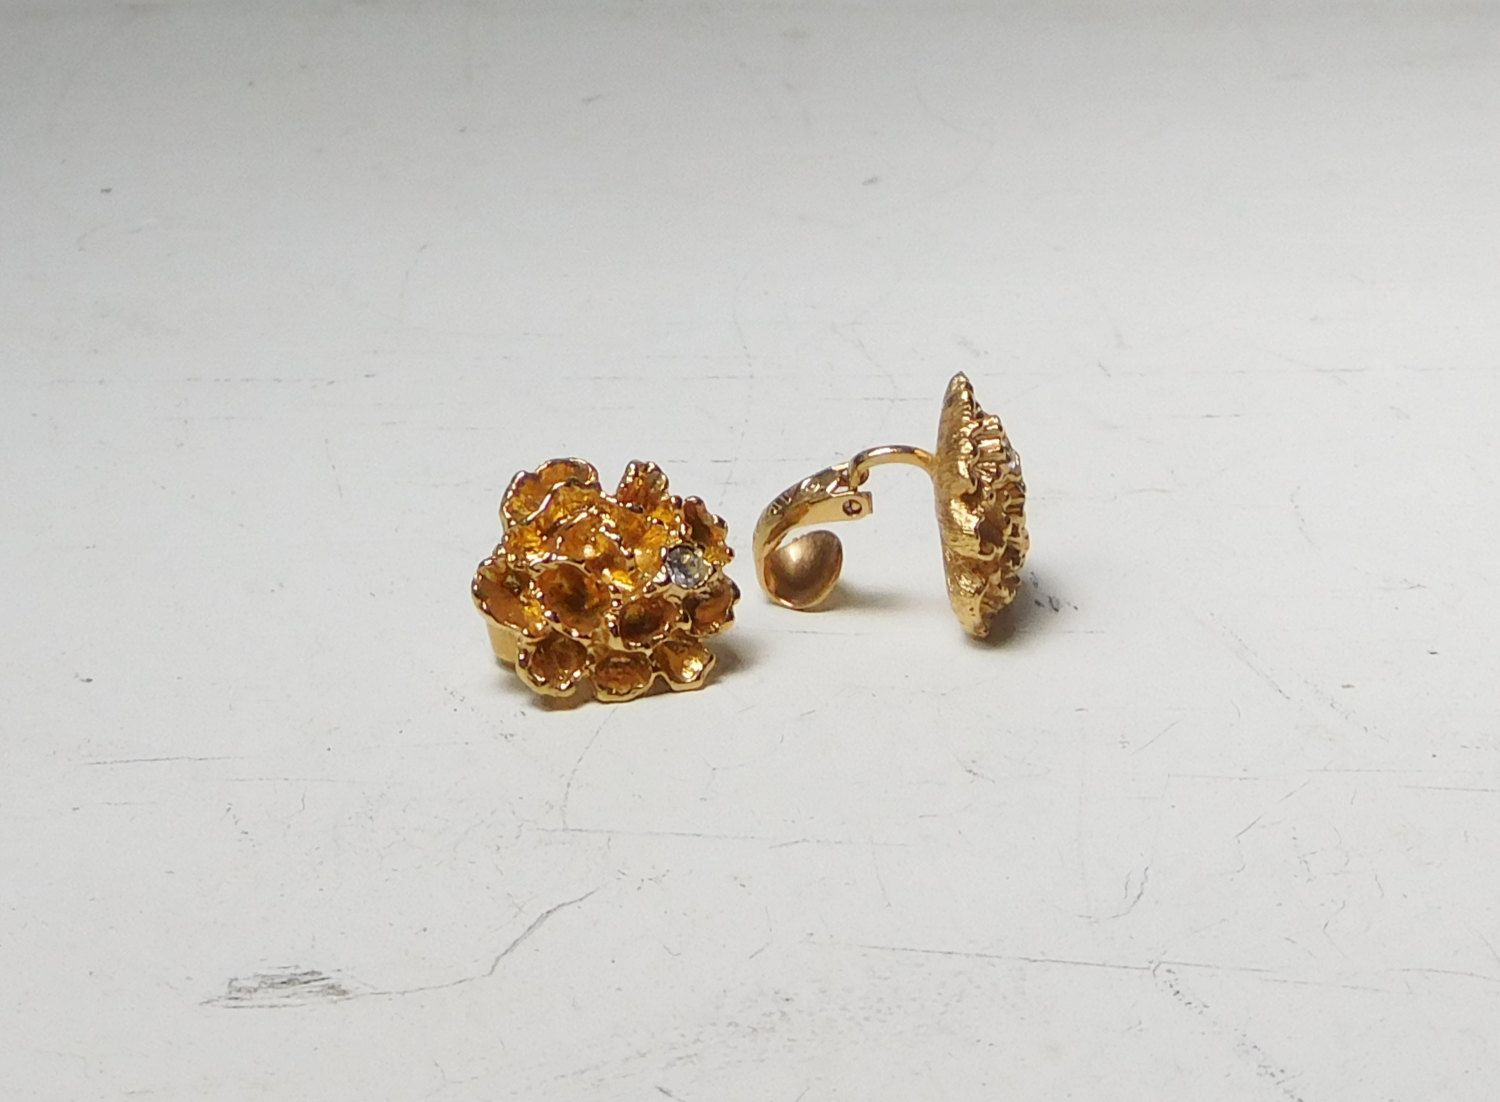 Gold Tone Rhinestone Clip On Earrings From Avon Vintage Costume Jewelry  Coral Flower Design